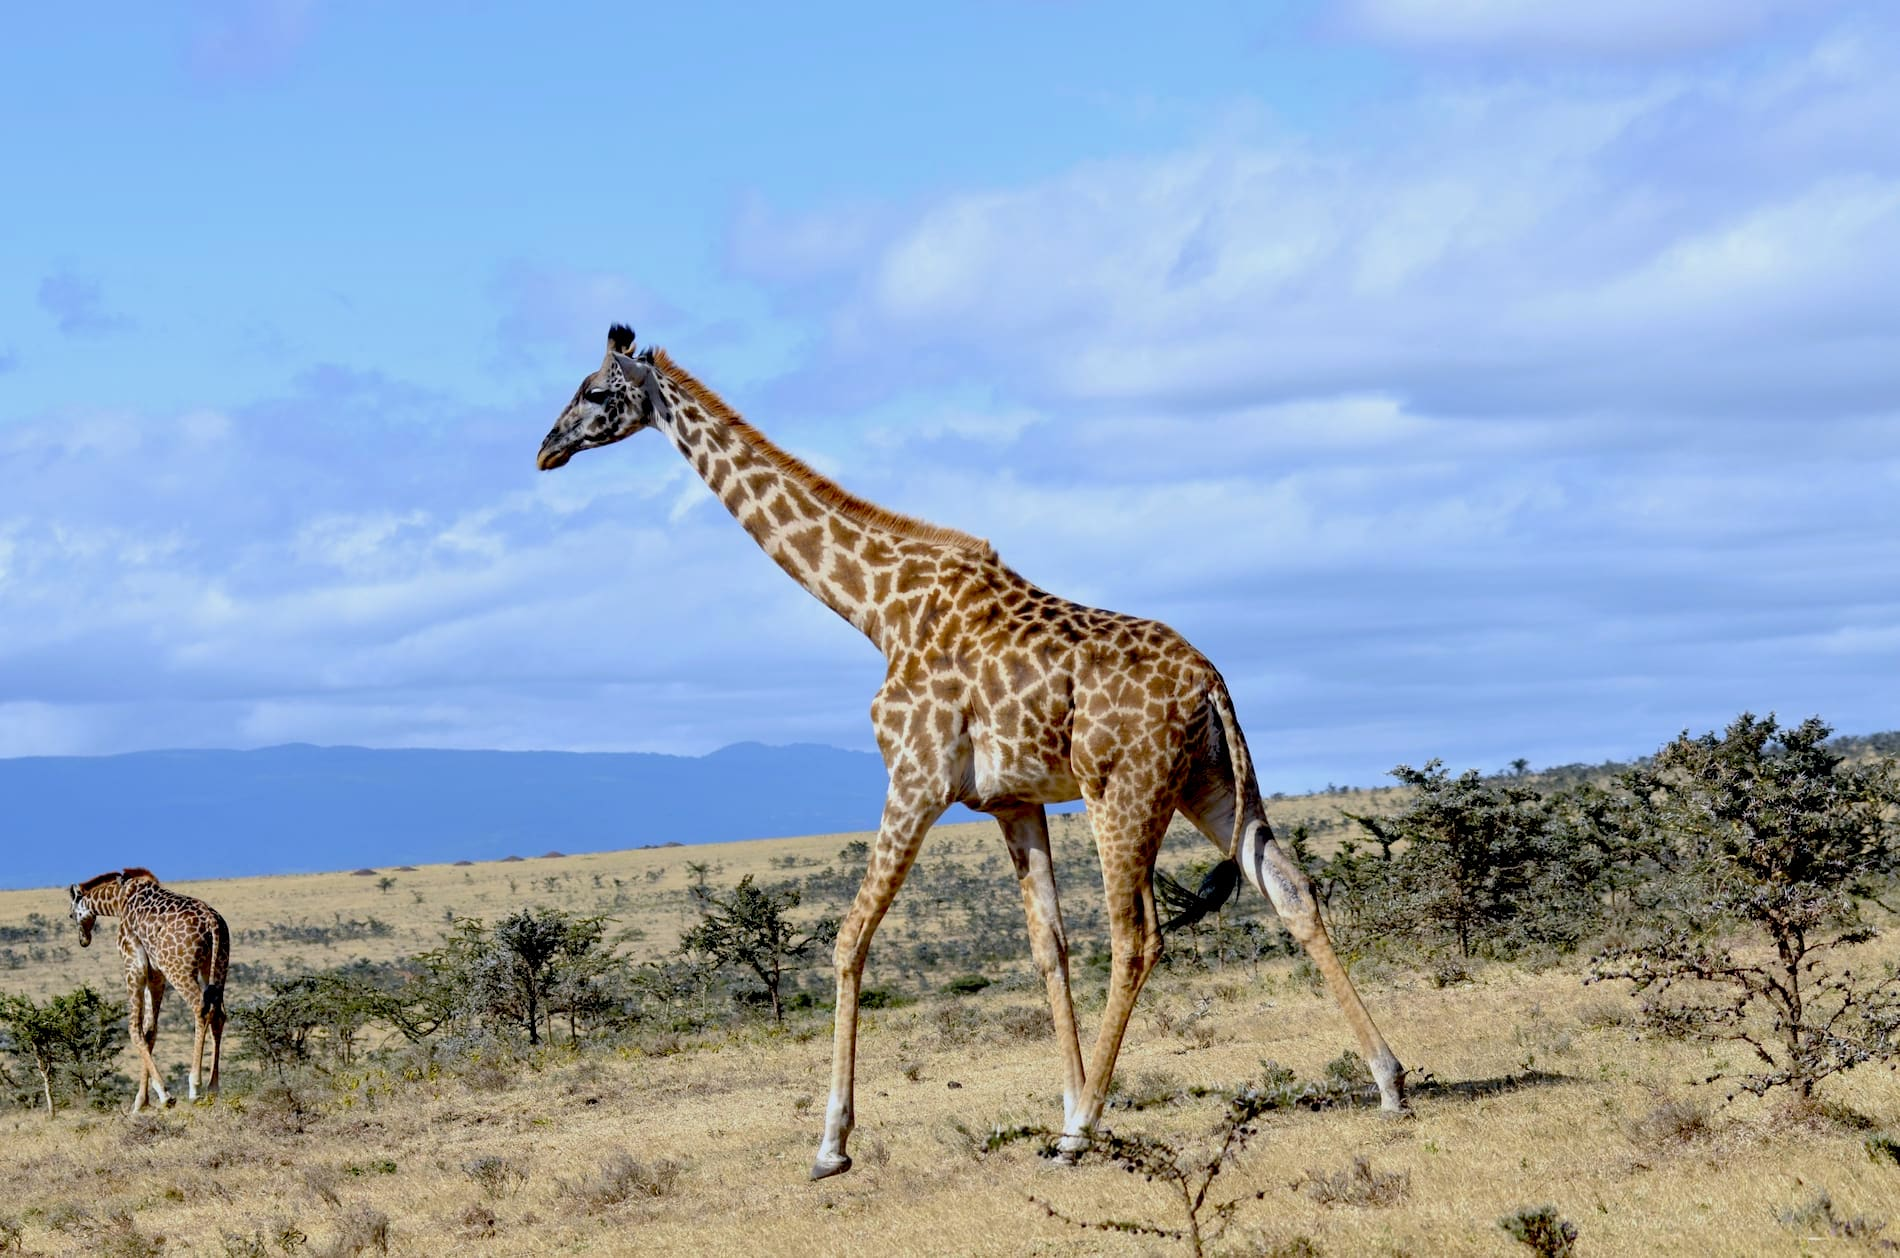 Adventour - Tanzania - Safari - Giraffe